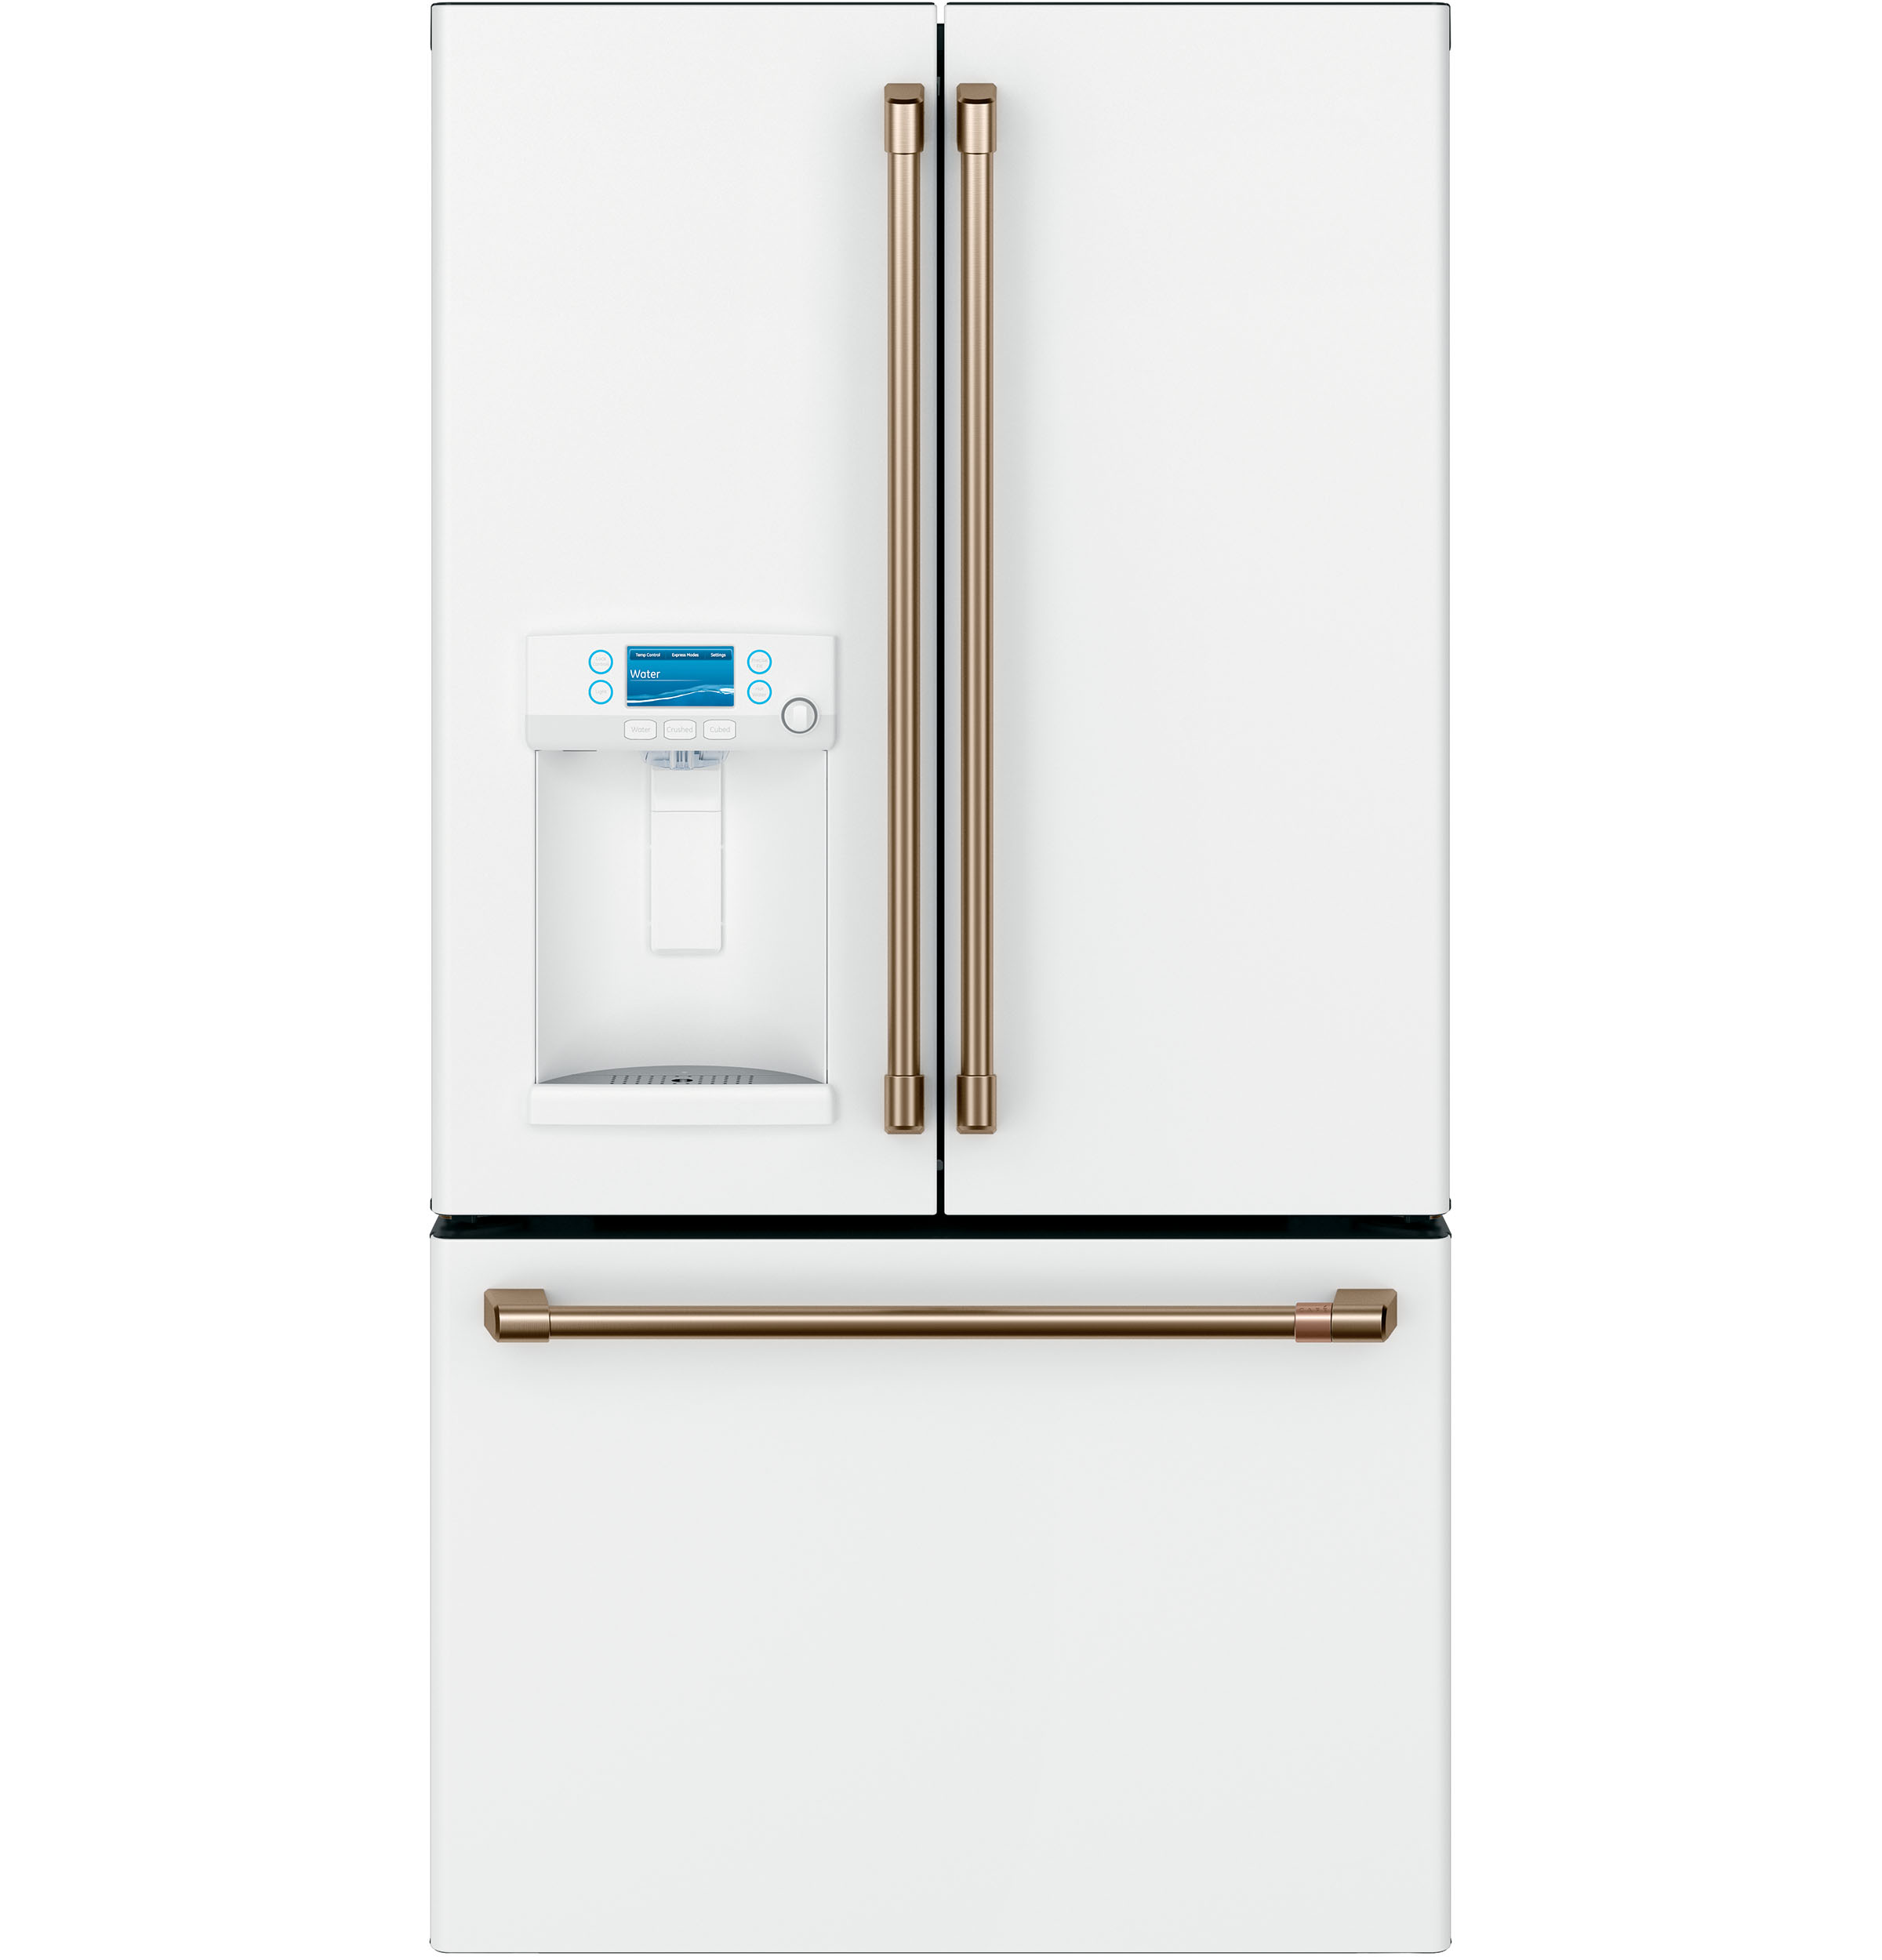 Caf Energy Star 278 Cu Ft French Door Refrigerator With Hot Fridge Alarm Circuit Diagram Product Image